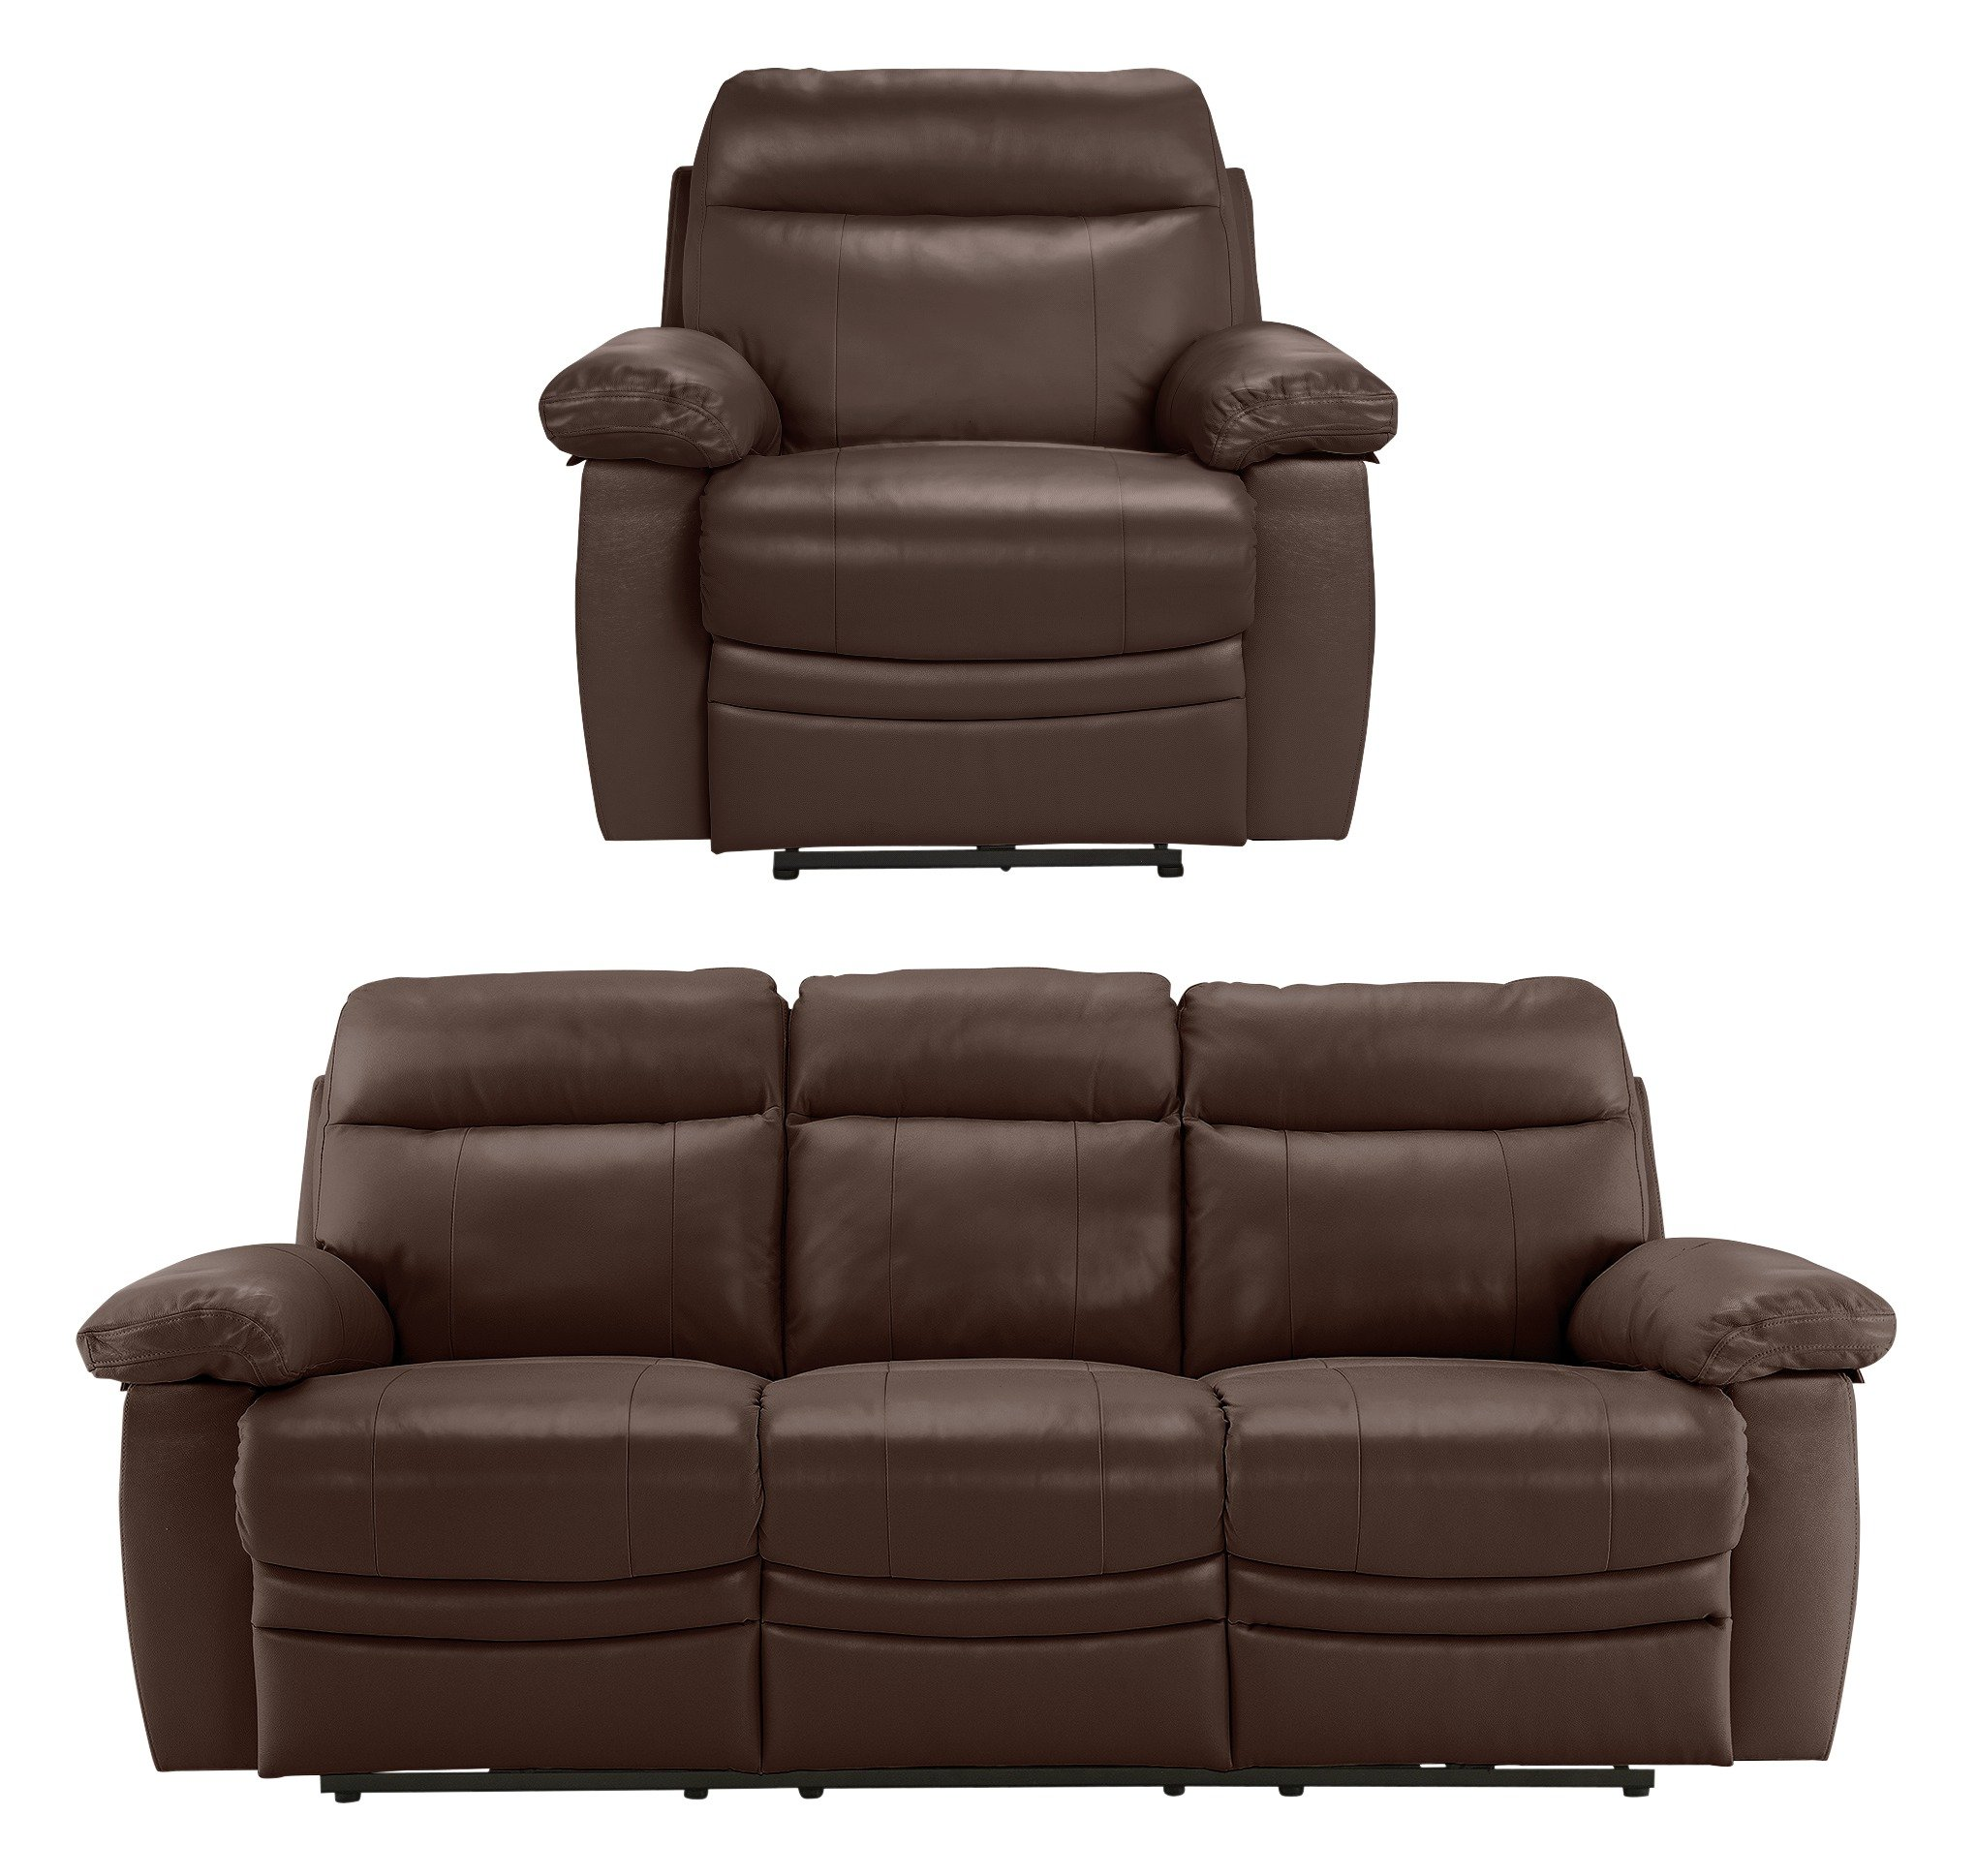 Argos Home - New Paolo Large Power Recliner - Sofa/Chair - Choc